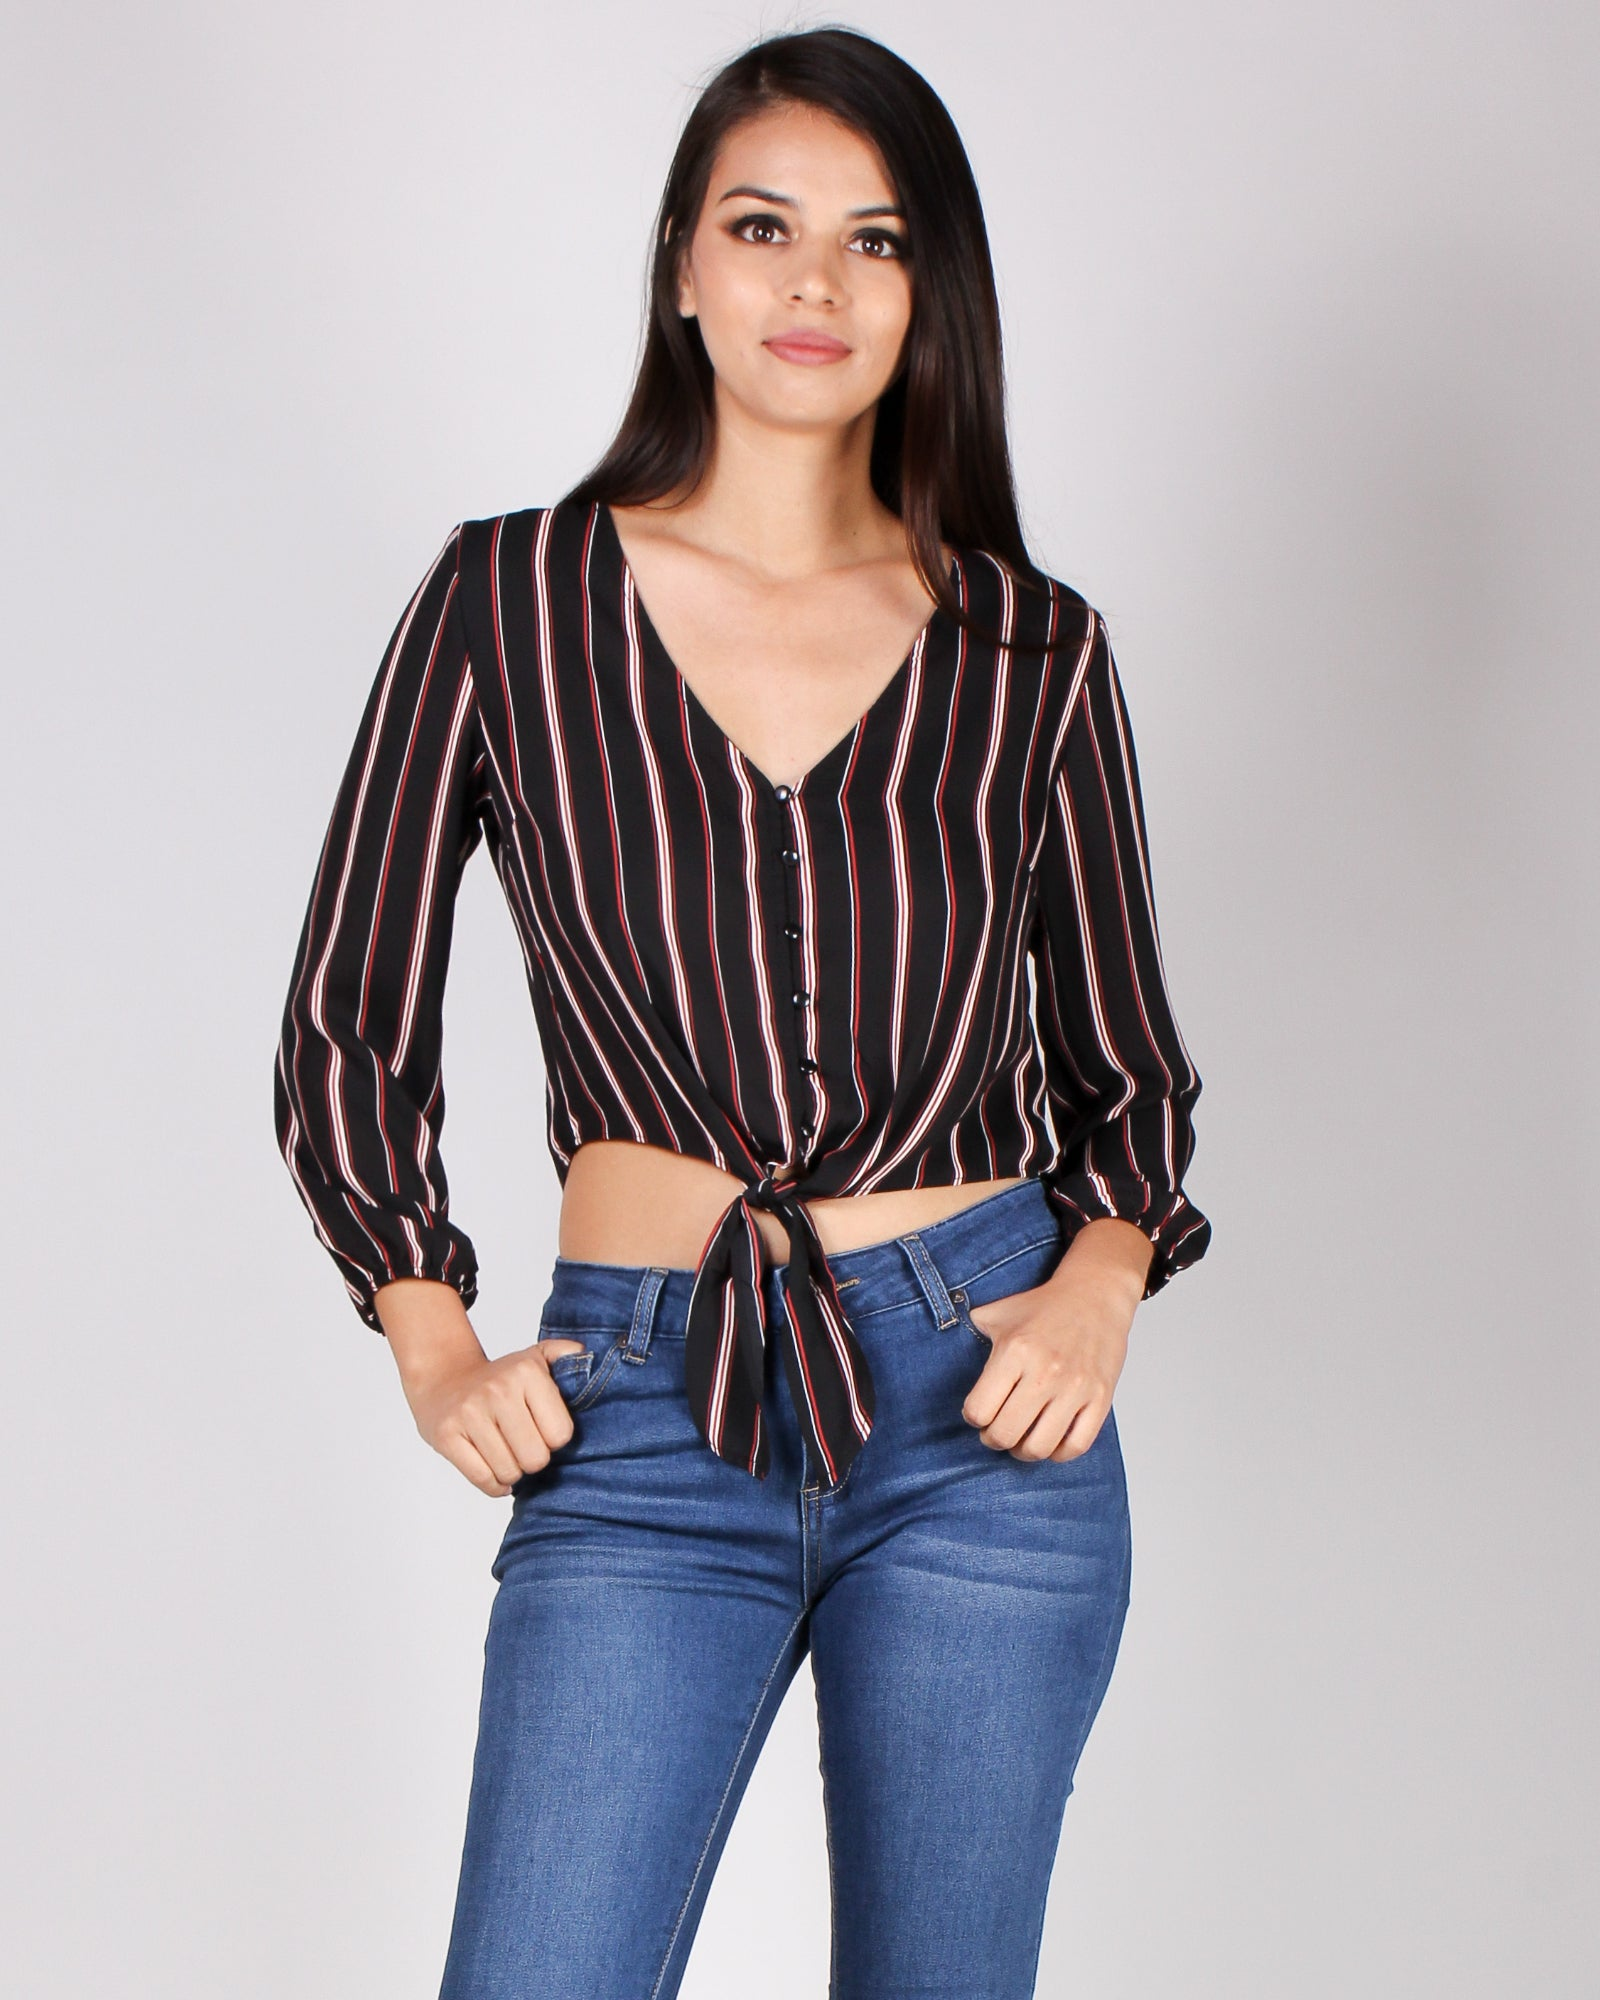 Fashion Q Shop Q Create Your Striping Dreams Blouse (Black) 71636-1